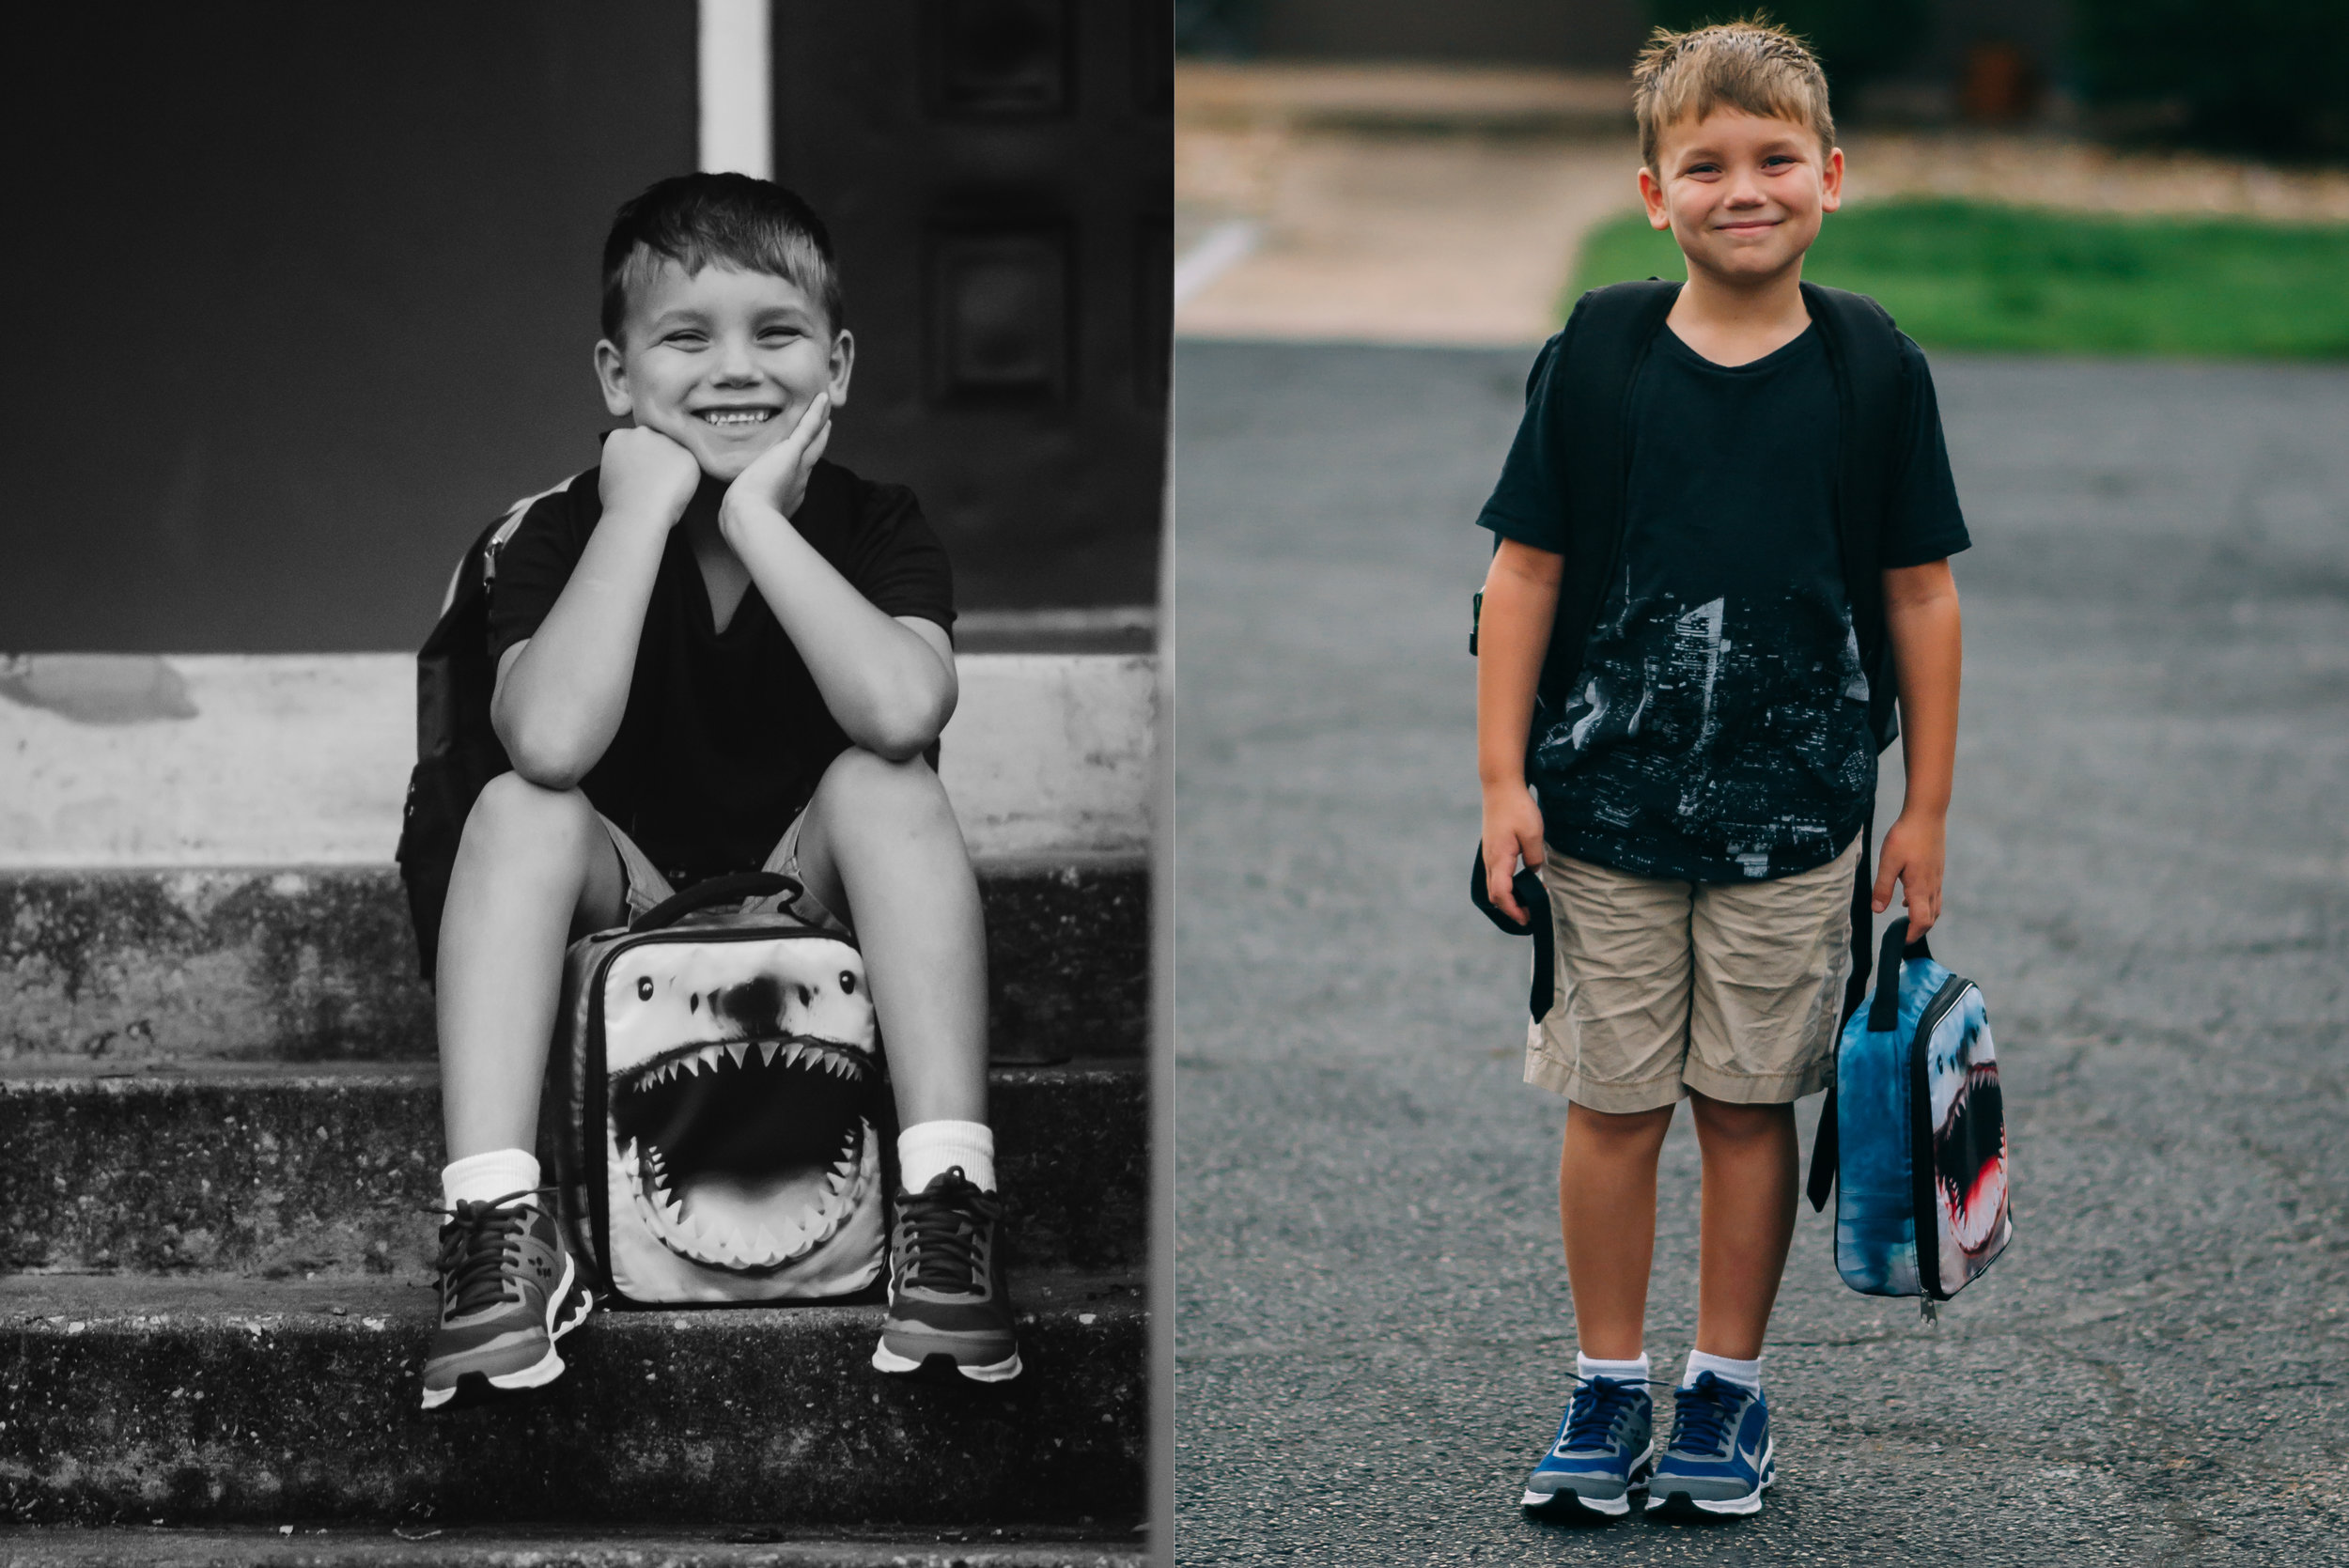 Christian's first day of second grade.